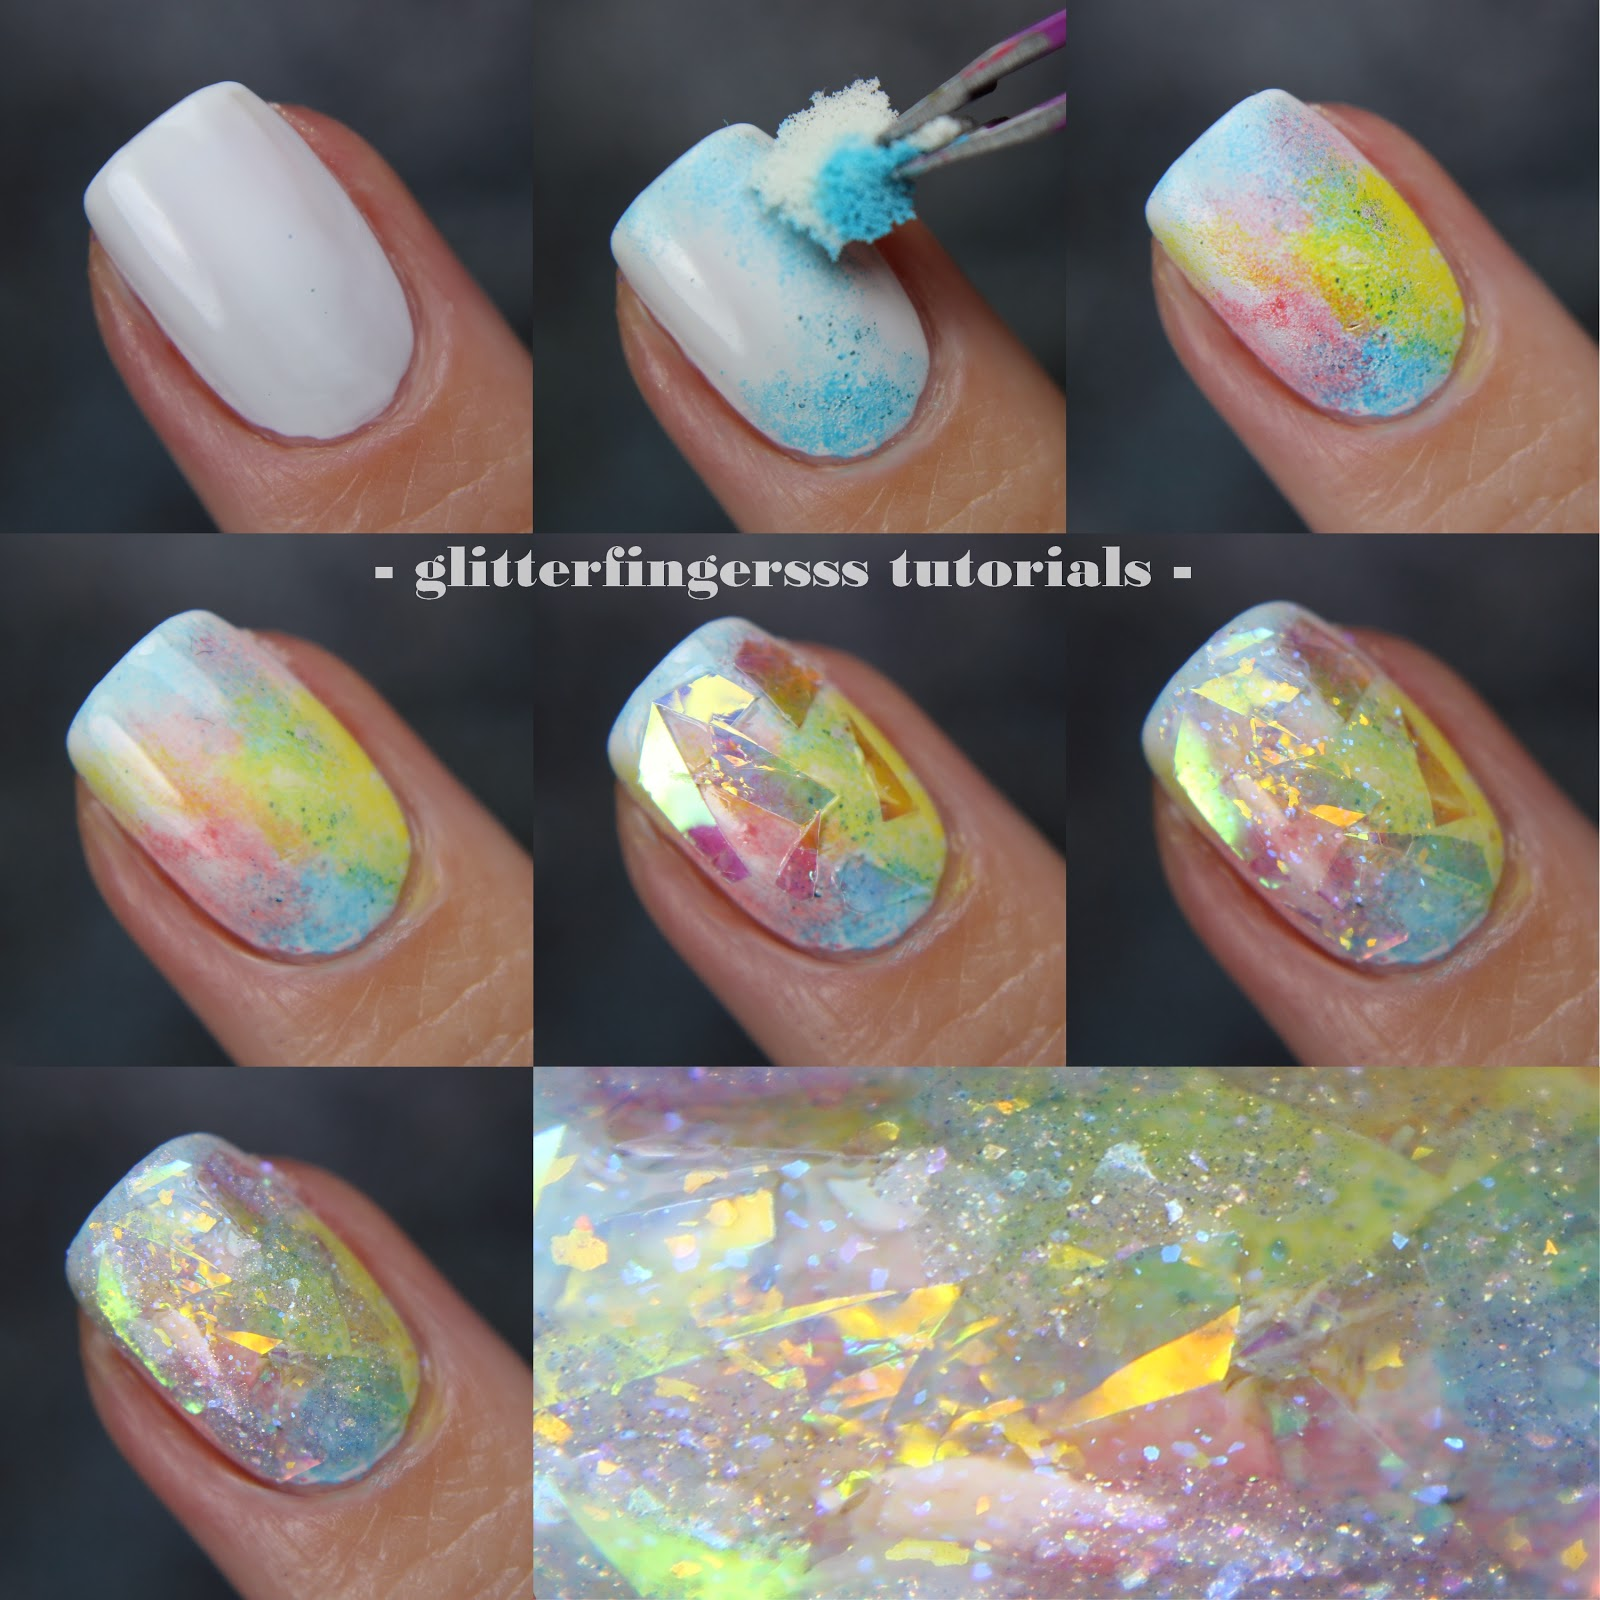 10 fun nail art ideas if you have short nails simplemost opal nails tutorial prinsesfo Image collections